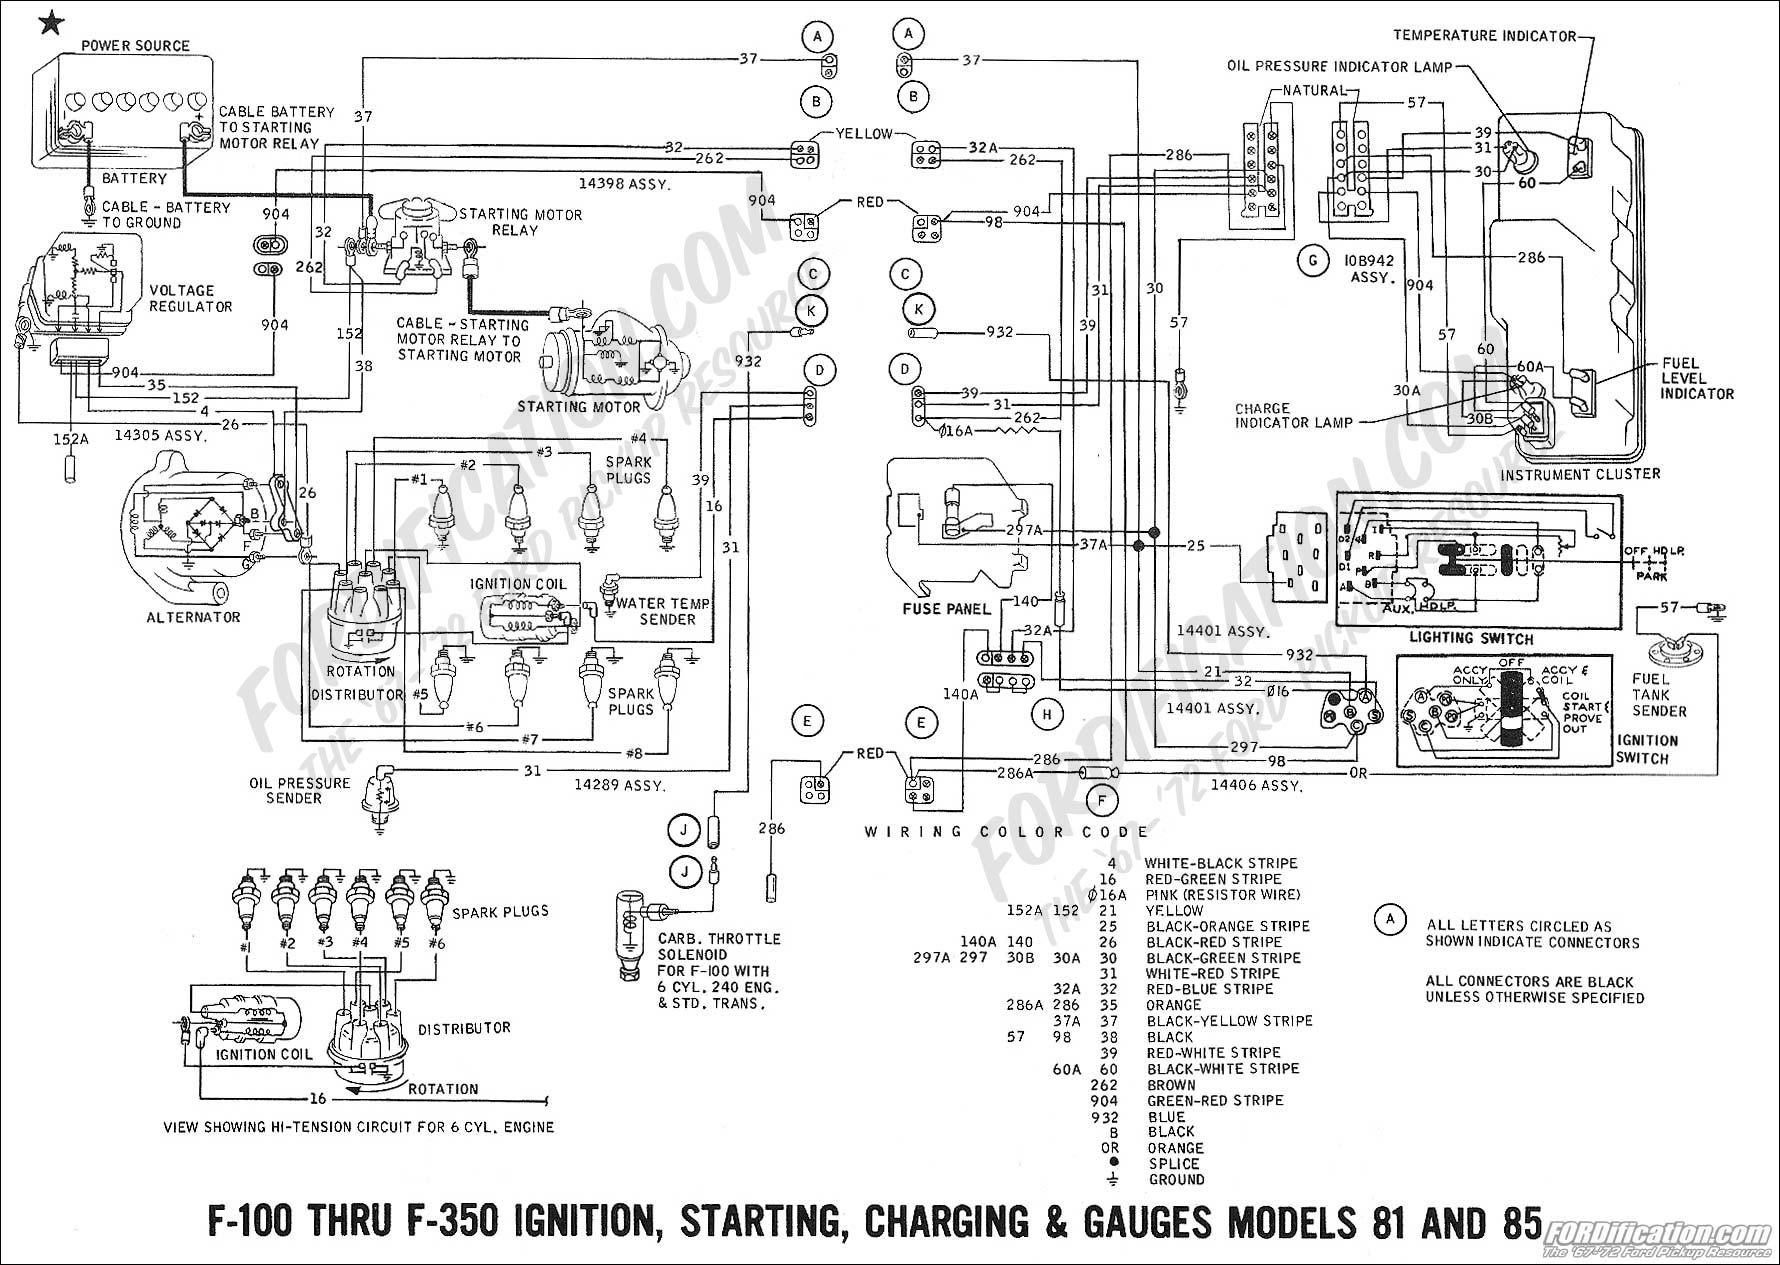 wiring 1969charging2?qualityd806stripdall ford e350 wiring diagram efcaviation com 2006 ford e350 fuse box diagram at panicattacktreatment.co